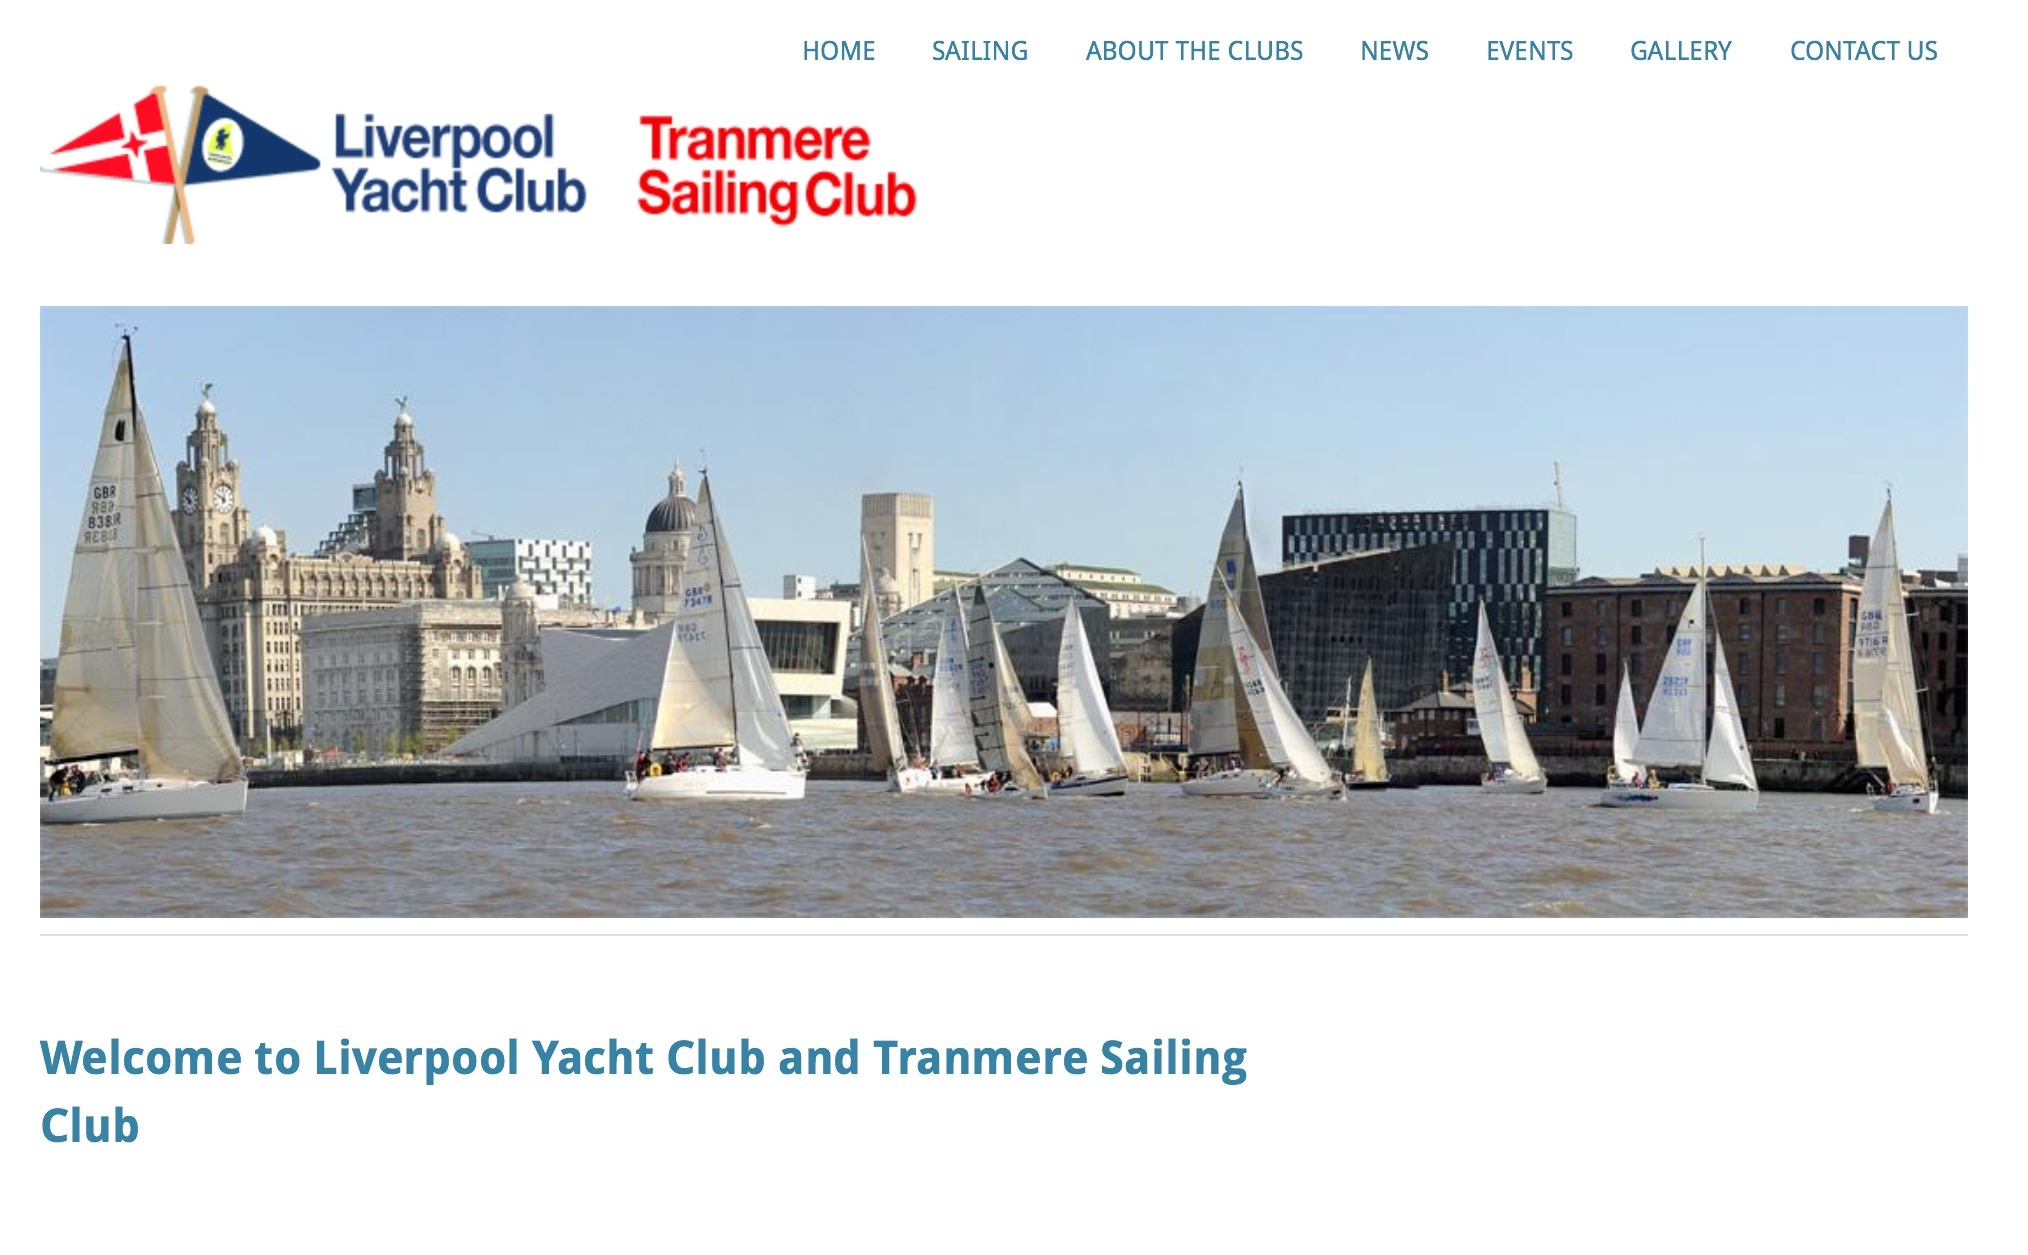 Liverpool Yacht Club & Tranmere Sailing Club